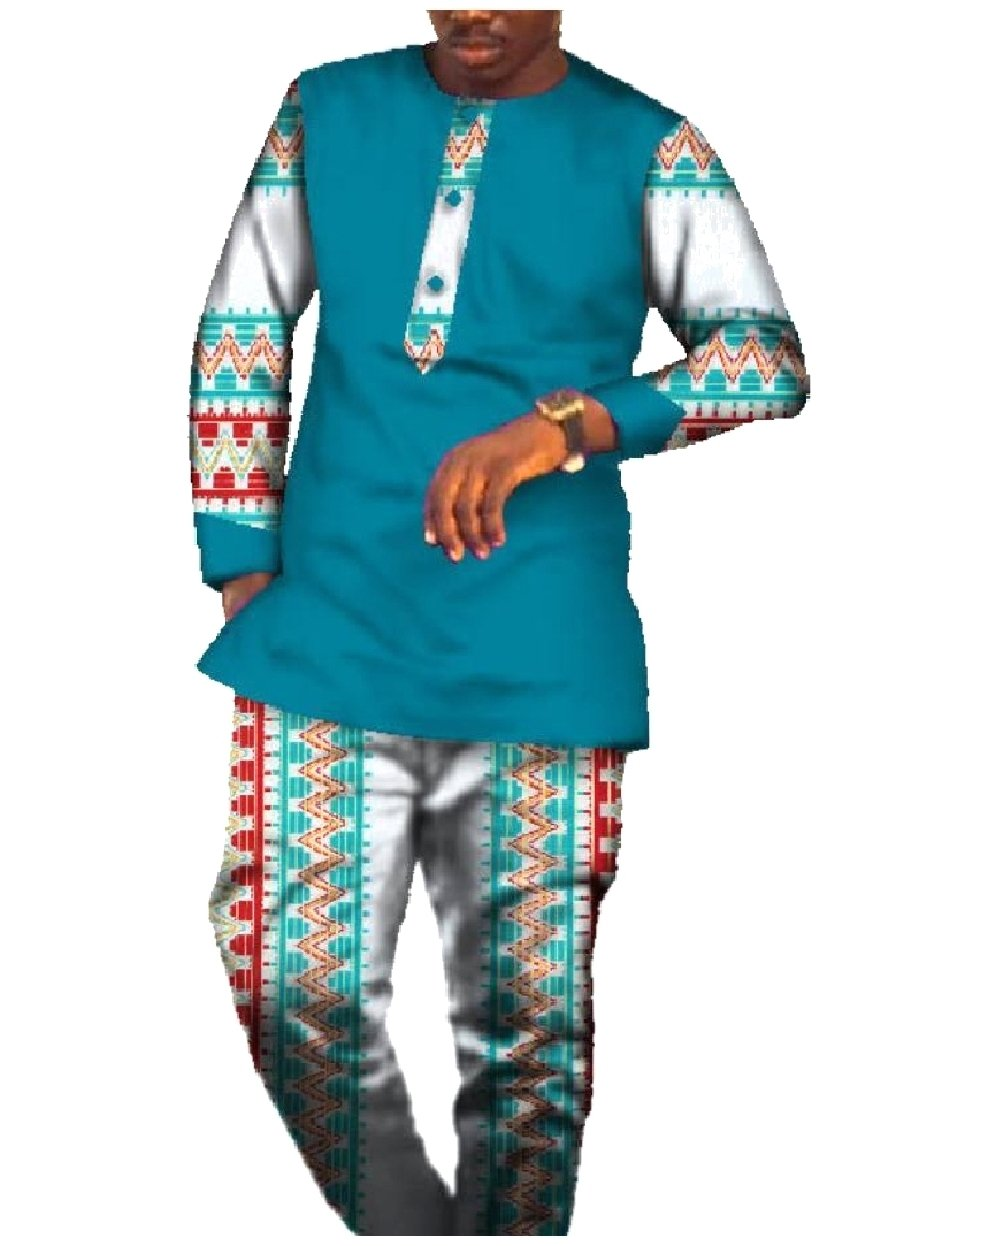 Tootless Men Fine Cotton African Dashiki Good Quality Pants + Tops Sets 9 S